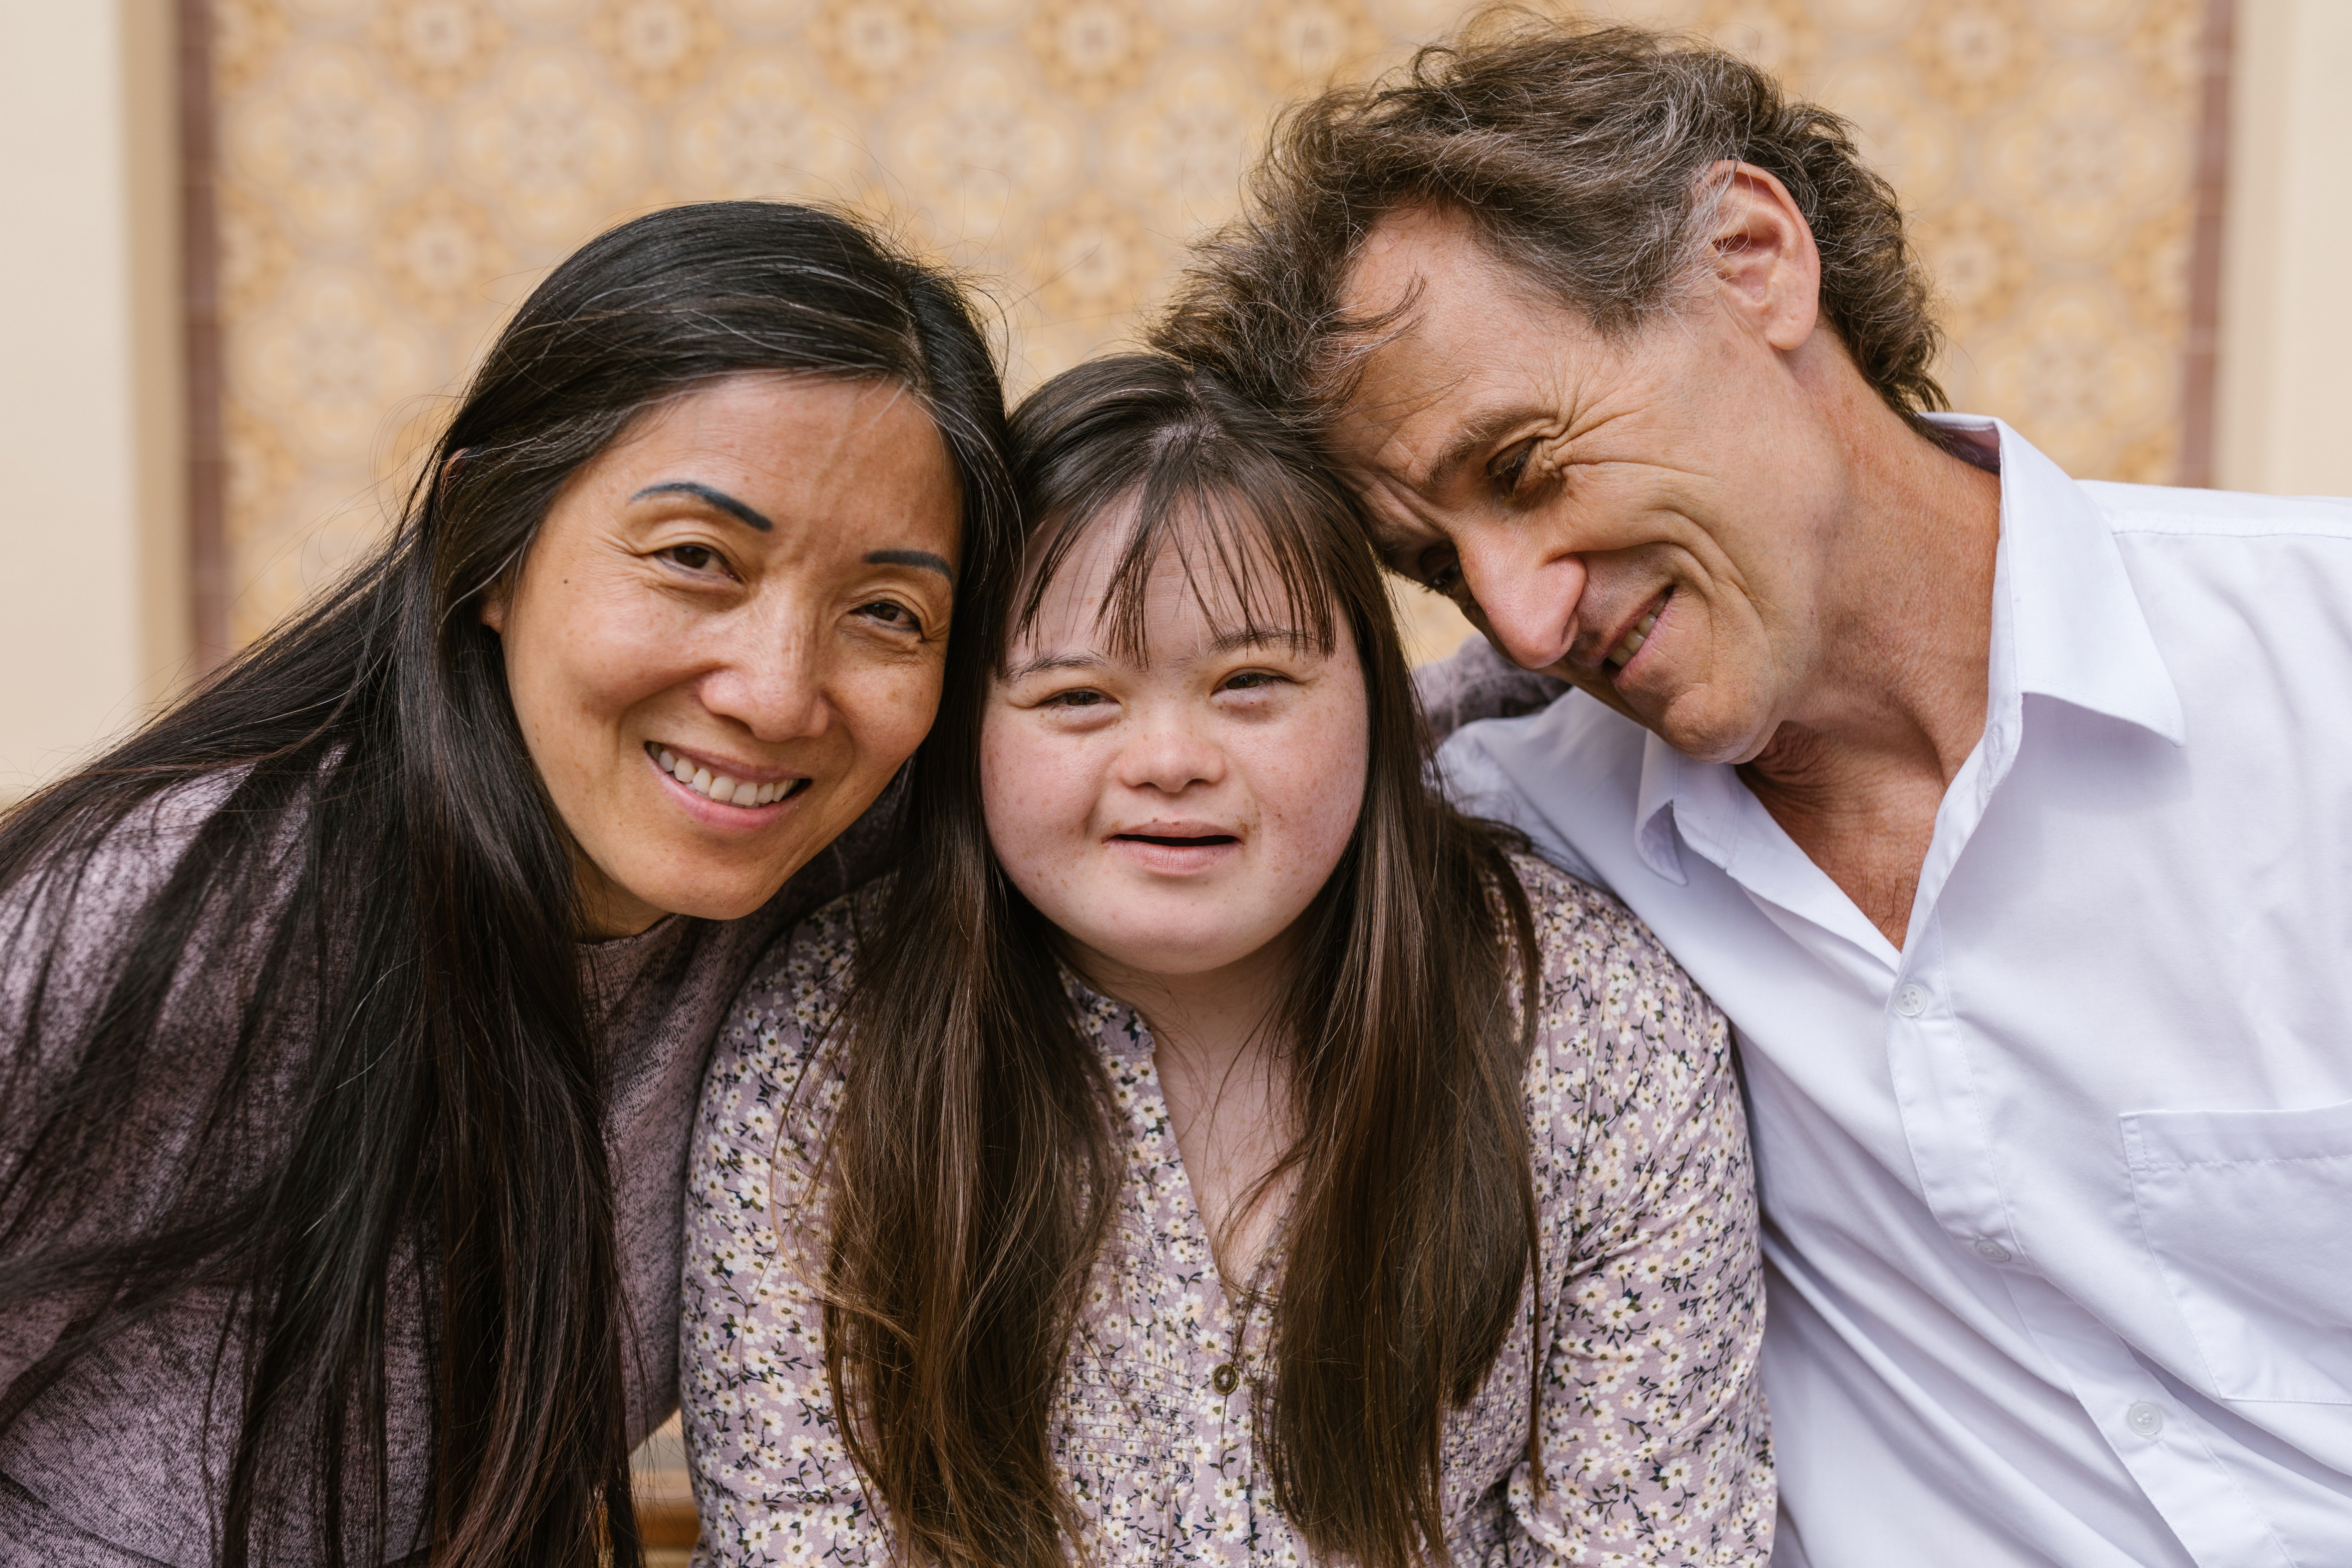 Couple with daughter | Photo: Pexels